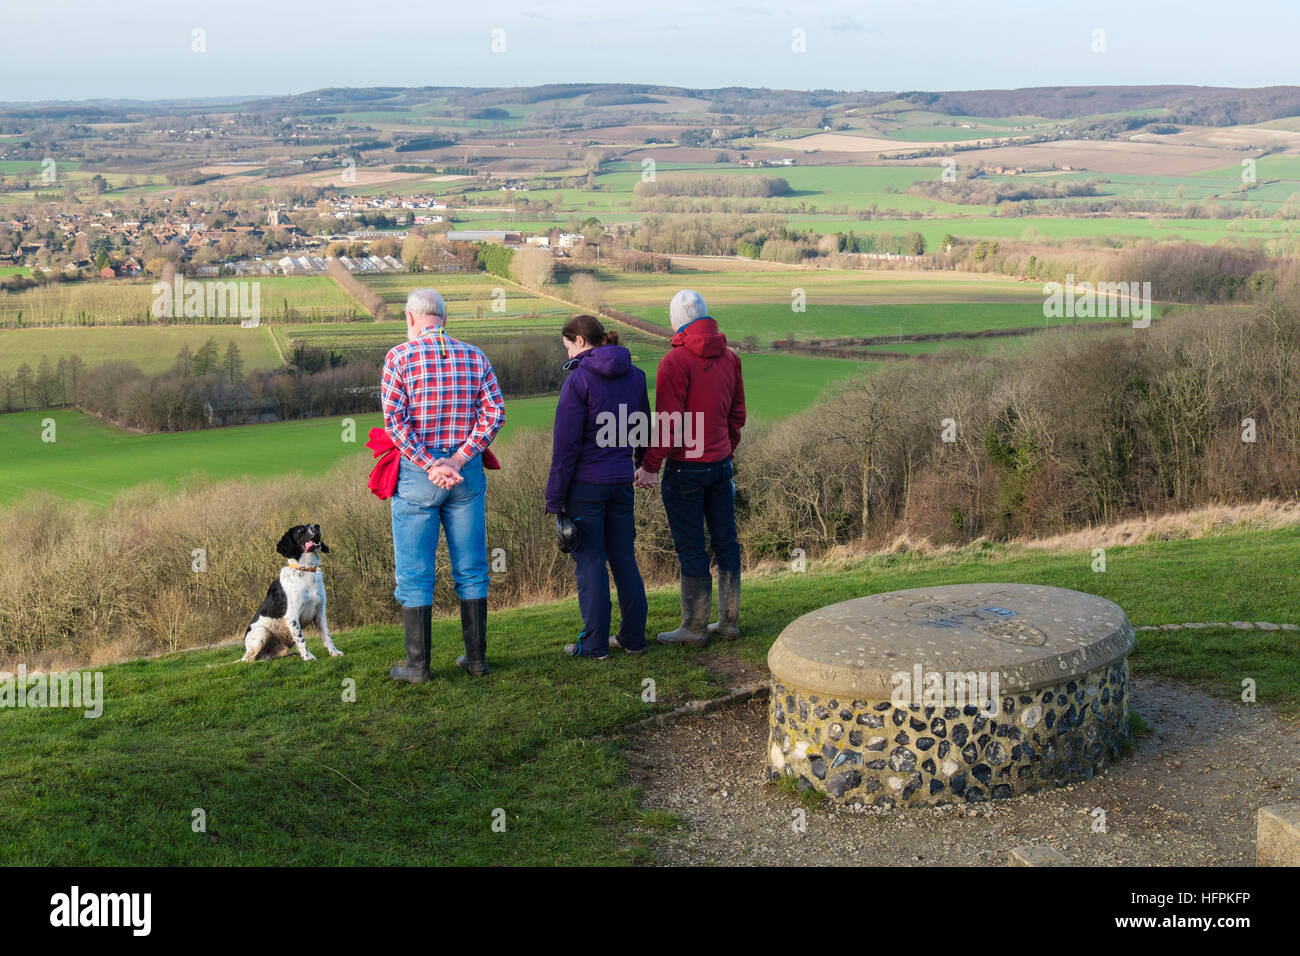 People looking at view with a dog by Wye Crown Millennium stone in Wye National Nature Reserve on North Downs Way. - Stock Image